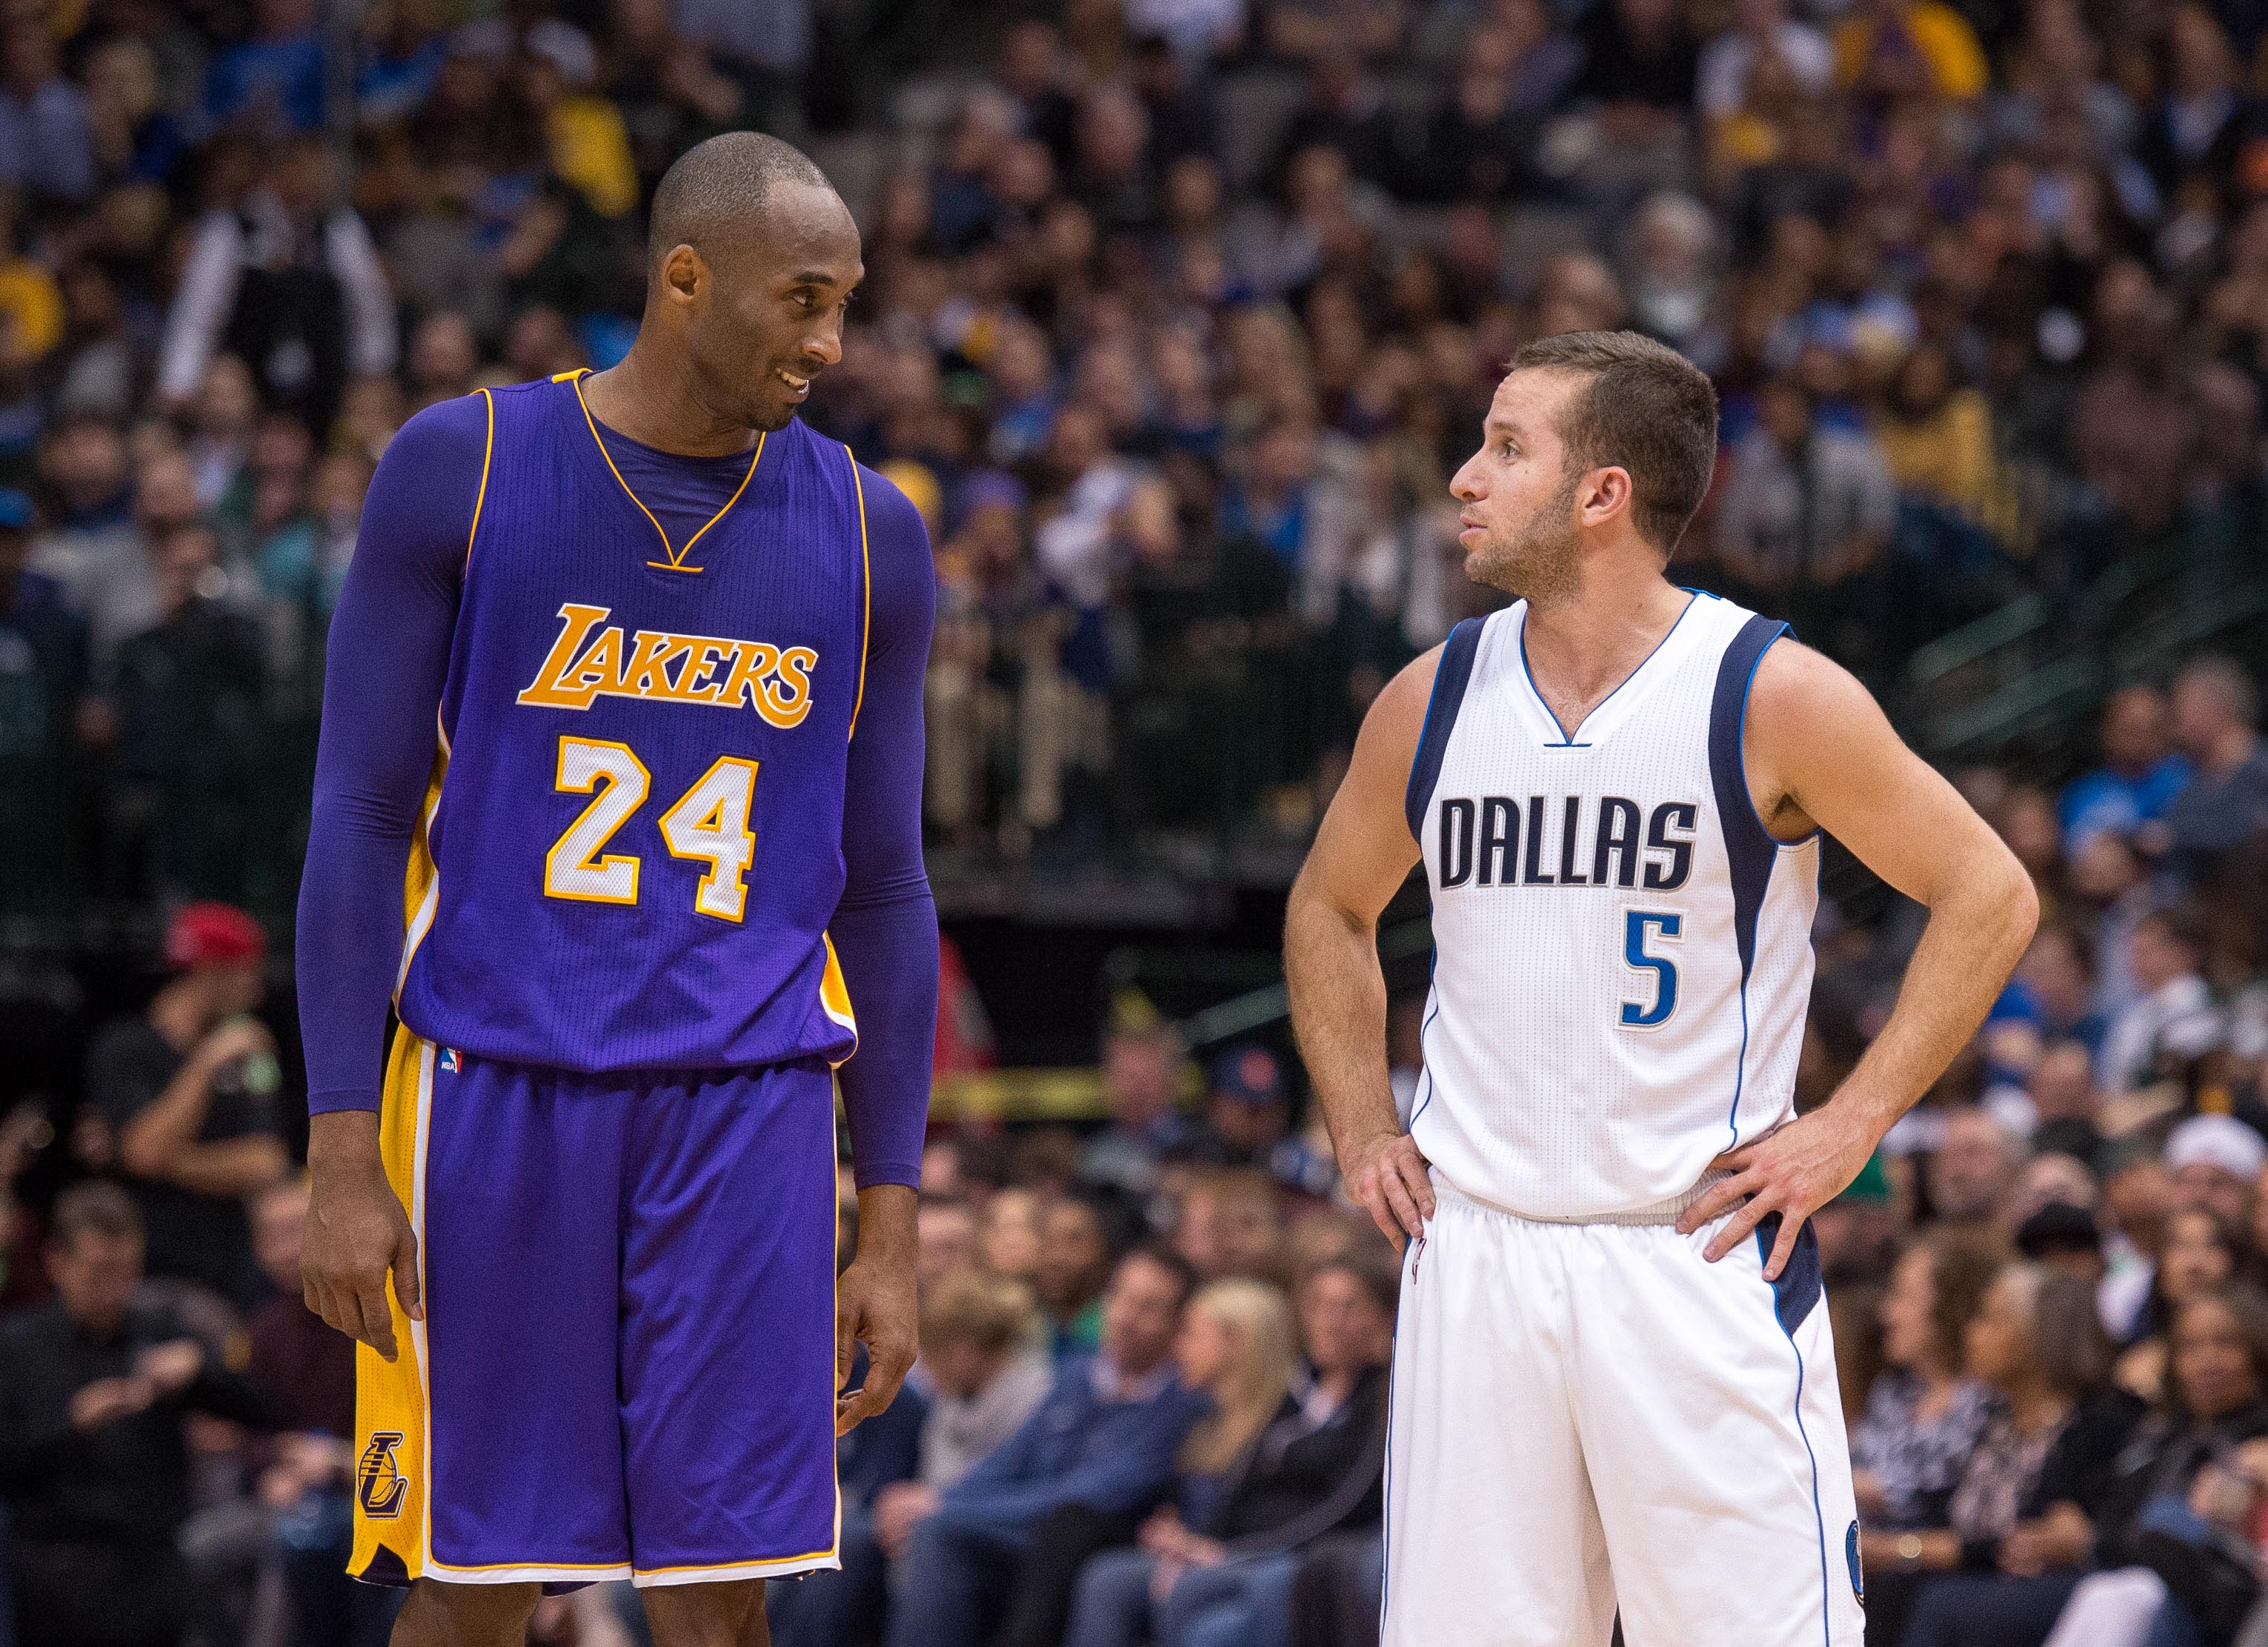 Best free agent options for lakers